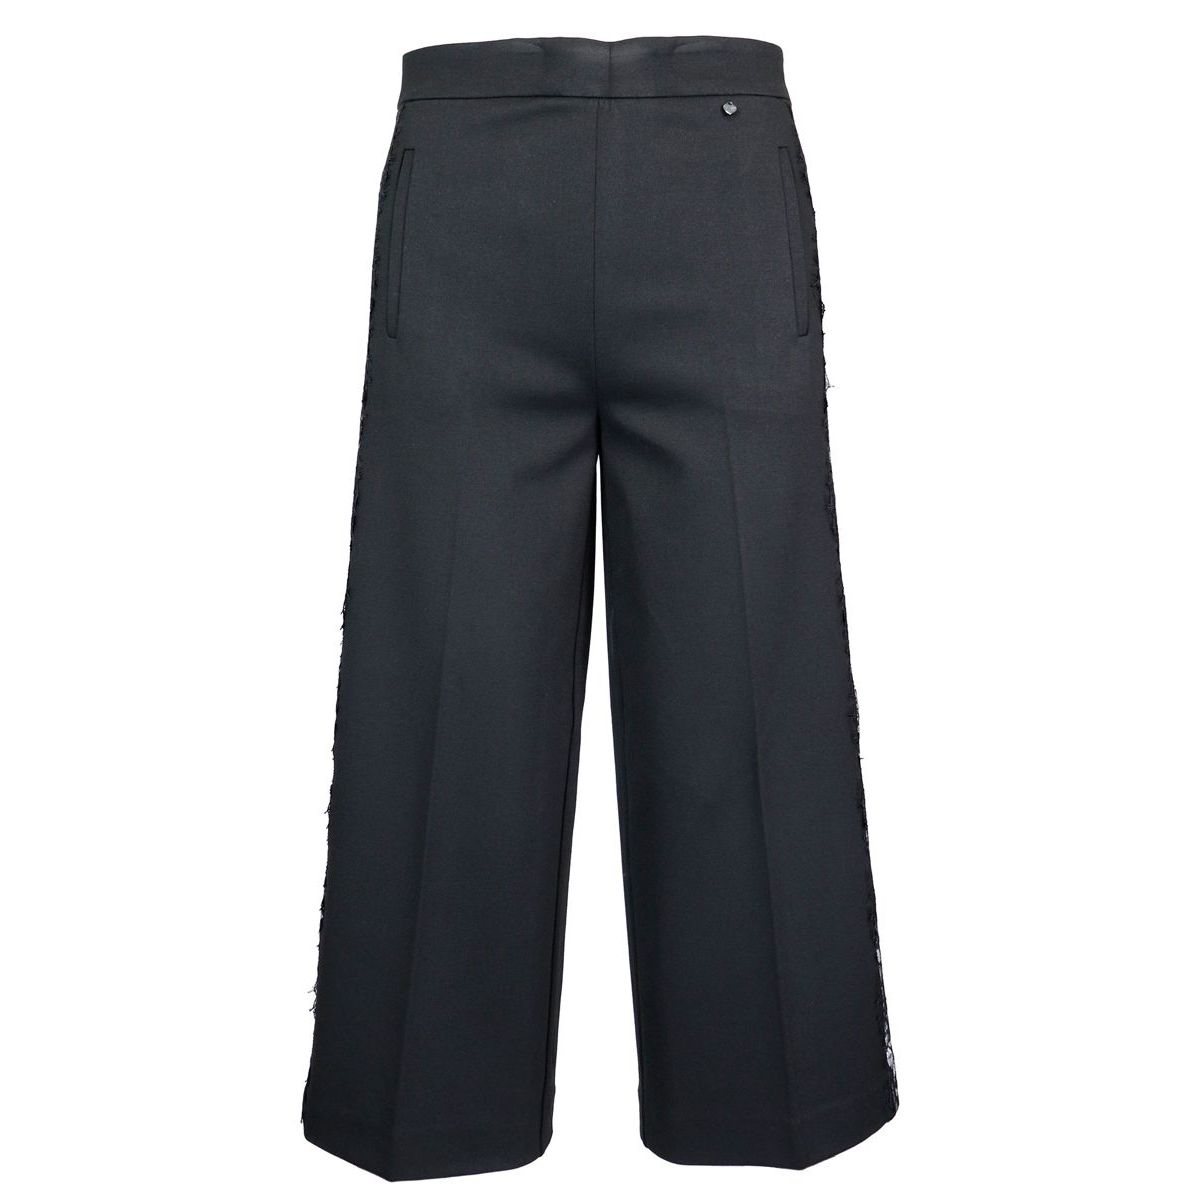 comprare on line 1d0b7 0ce4c Pantalone cropped con bandeau laterale a contrasto in pizzo